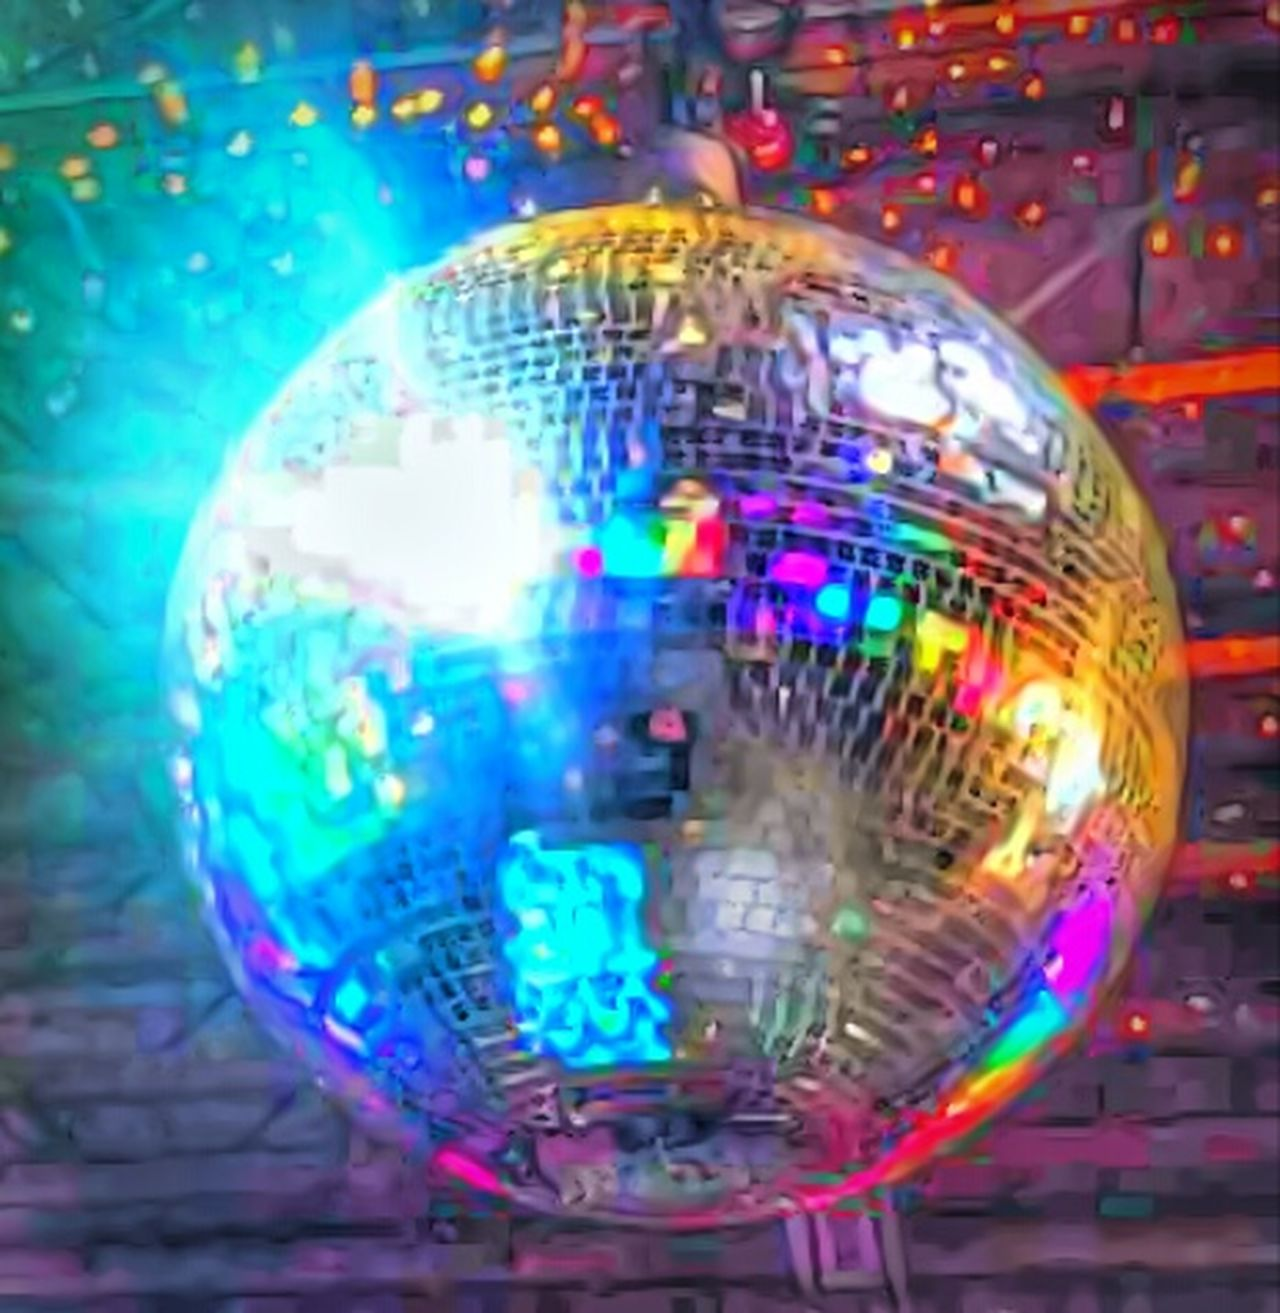 Music Single Object Disco Ball Panic At The Disco  AWW Get Down!💃 Dancing The Night Away Boogie Night Techno Just Beat It👌 Get Down Shake Your Booty HokeyPokey Sock Hop The 70's That 70's Show  From My Point Of View Getty Images Tadaa Community Original Experiences Eyeem Market Streemzoofamily Shootermag EyeEm Gallery Multi Colored Like A Lazer Millennial Pink EyeEmNewHere Resist EyeEm Diversity The Secret Spaces Long Goodbye Out Of The Box Live For The Story